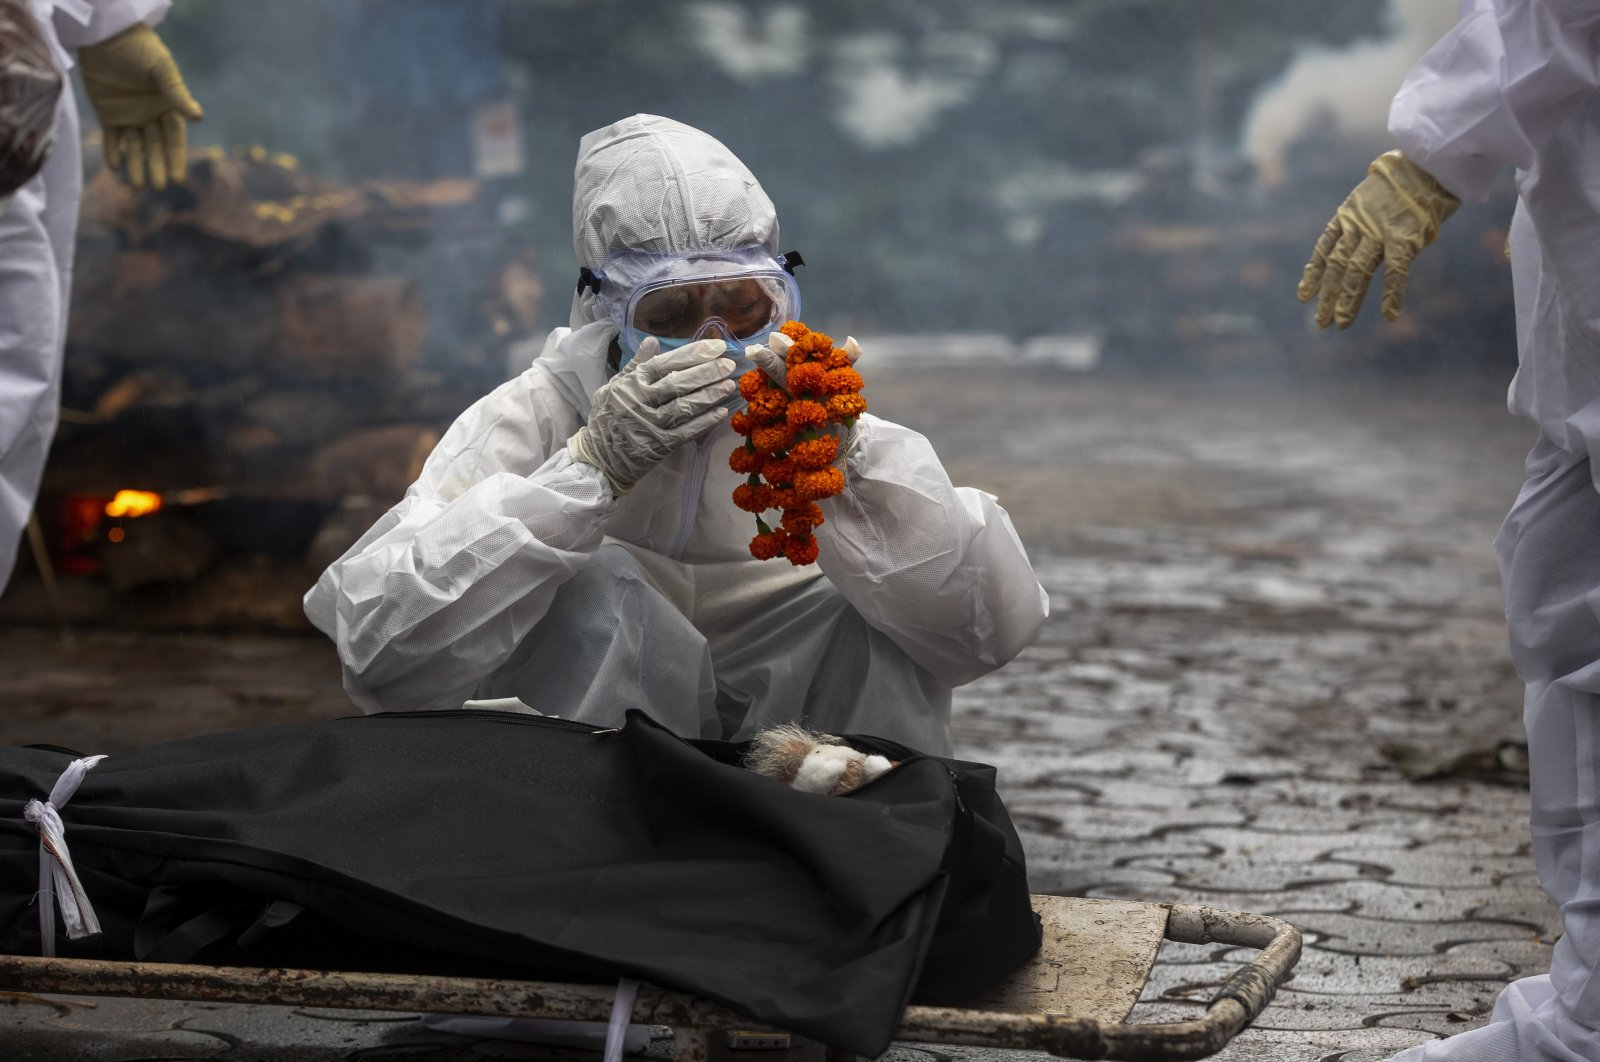 A relative performs last rites before the cremation of a COVID-19 victim in Gauhati, India, July 2, 2021. (AP Photo)